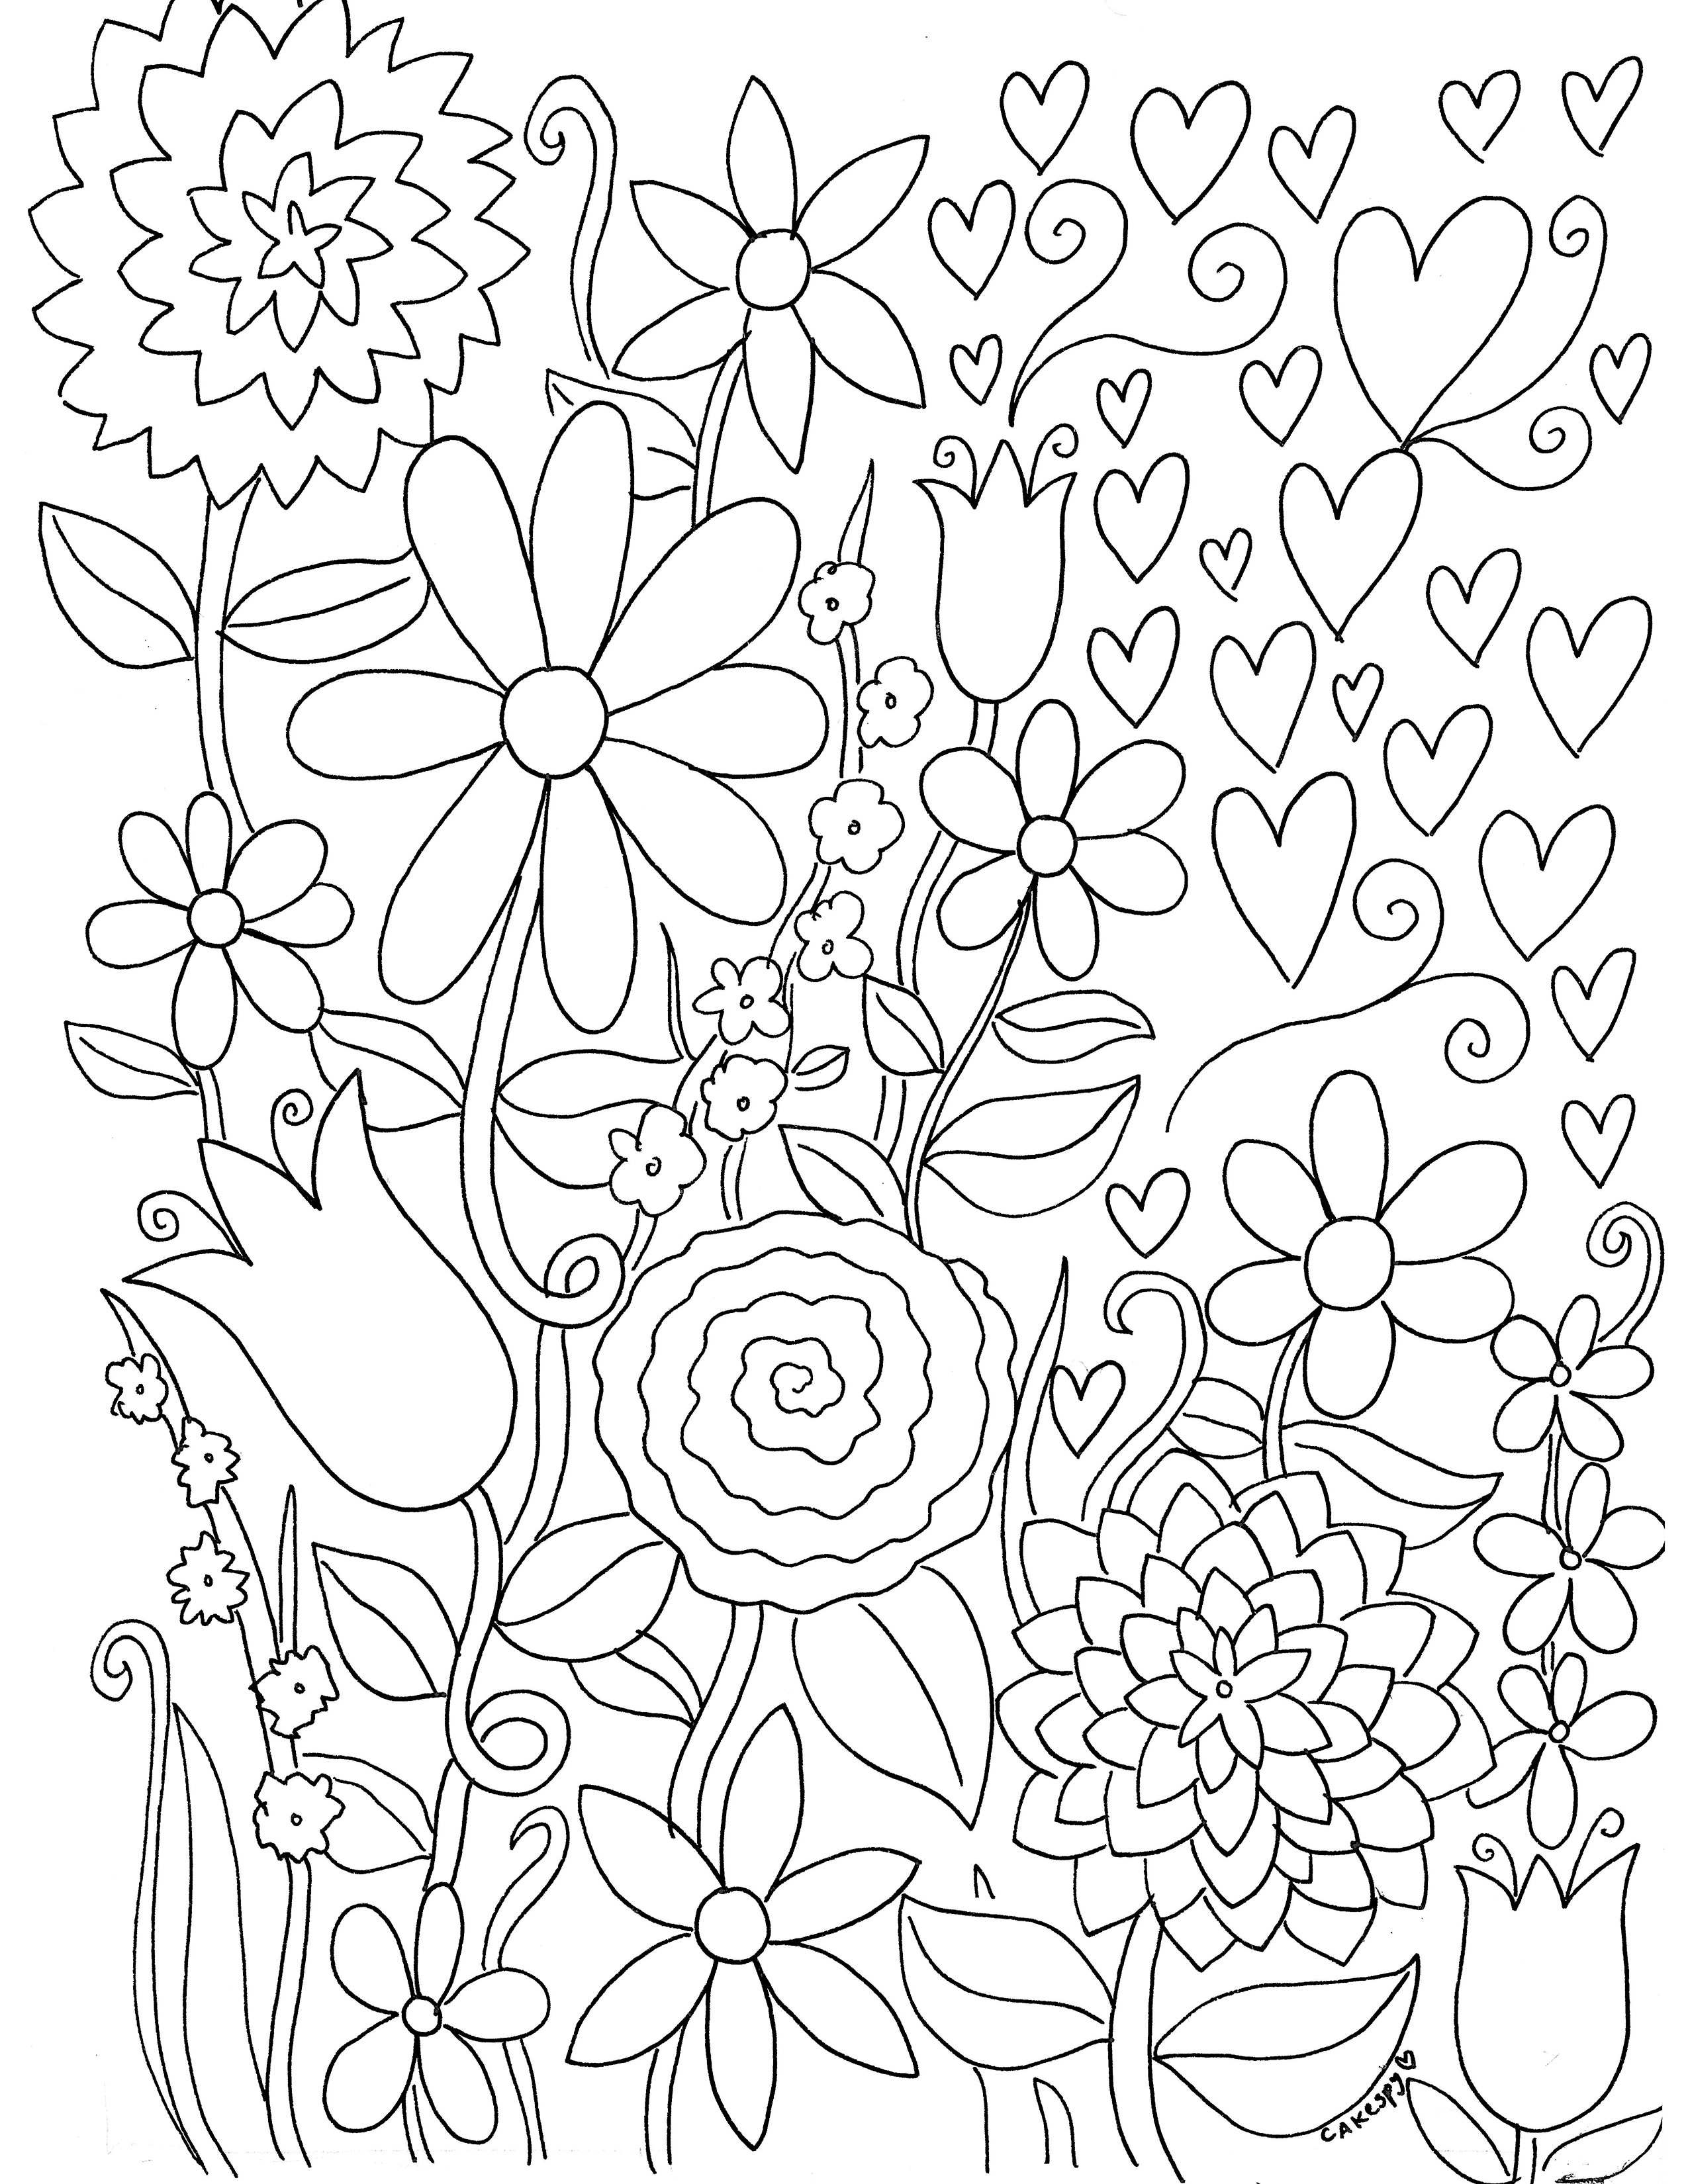 stress relief coloring pages - free coloring media